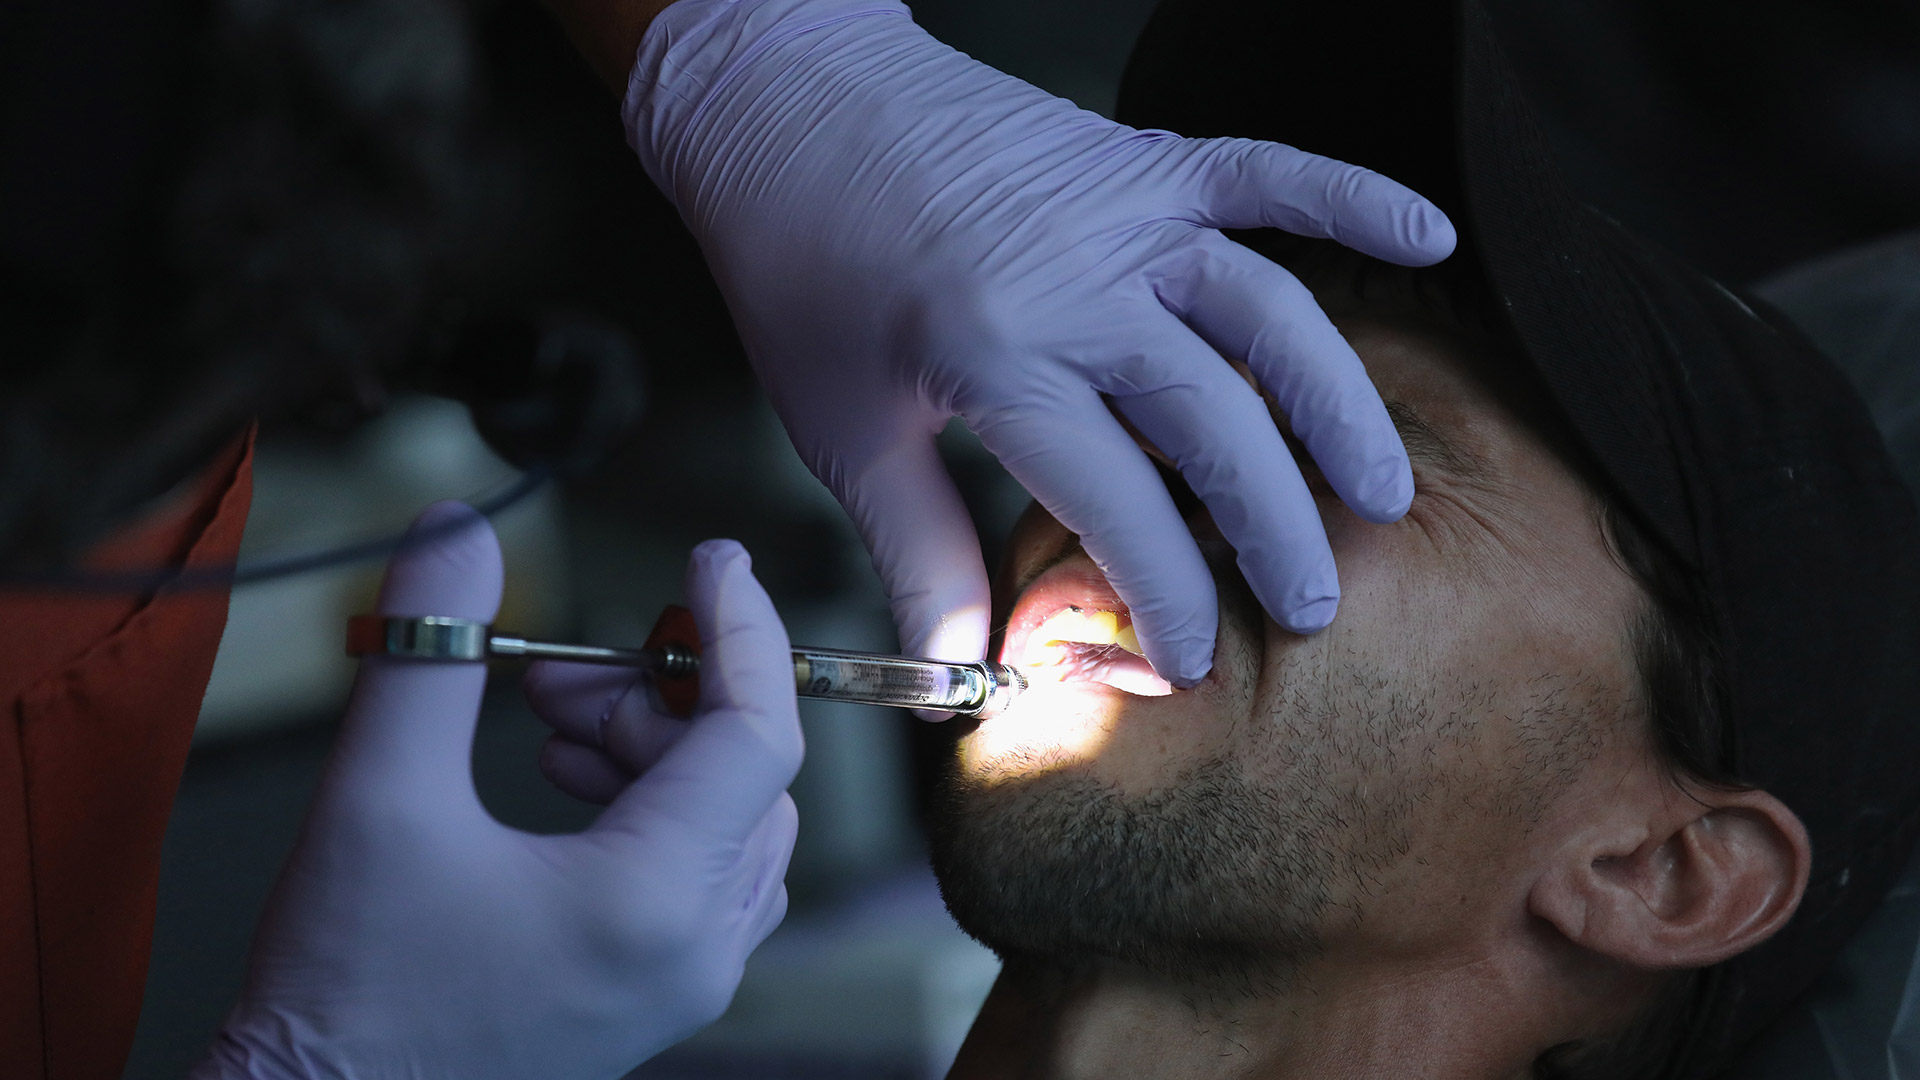 Overtreatment, Lax Scientific Standards Raise Concerns in Dentistry